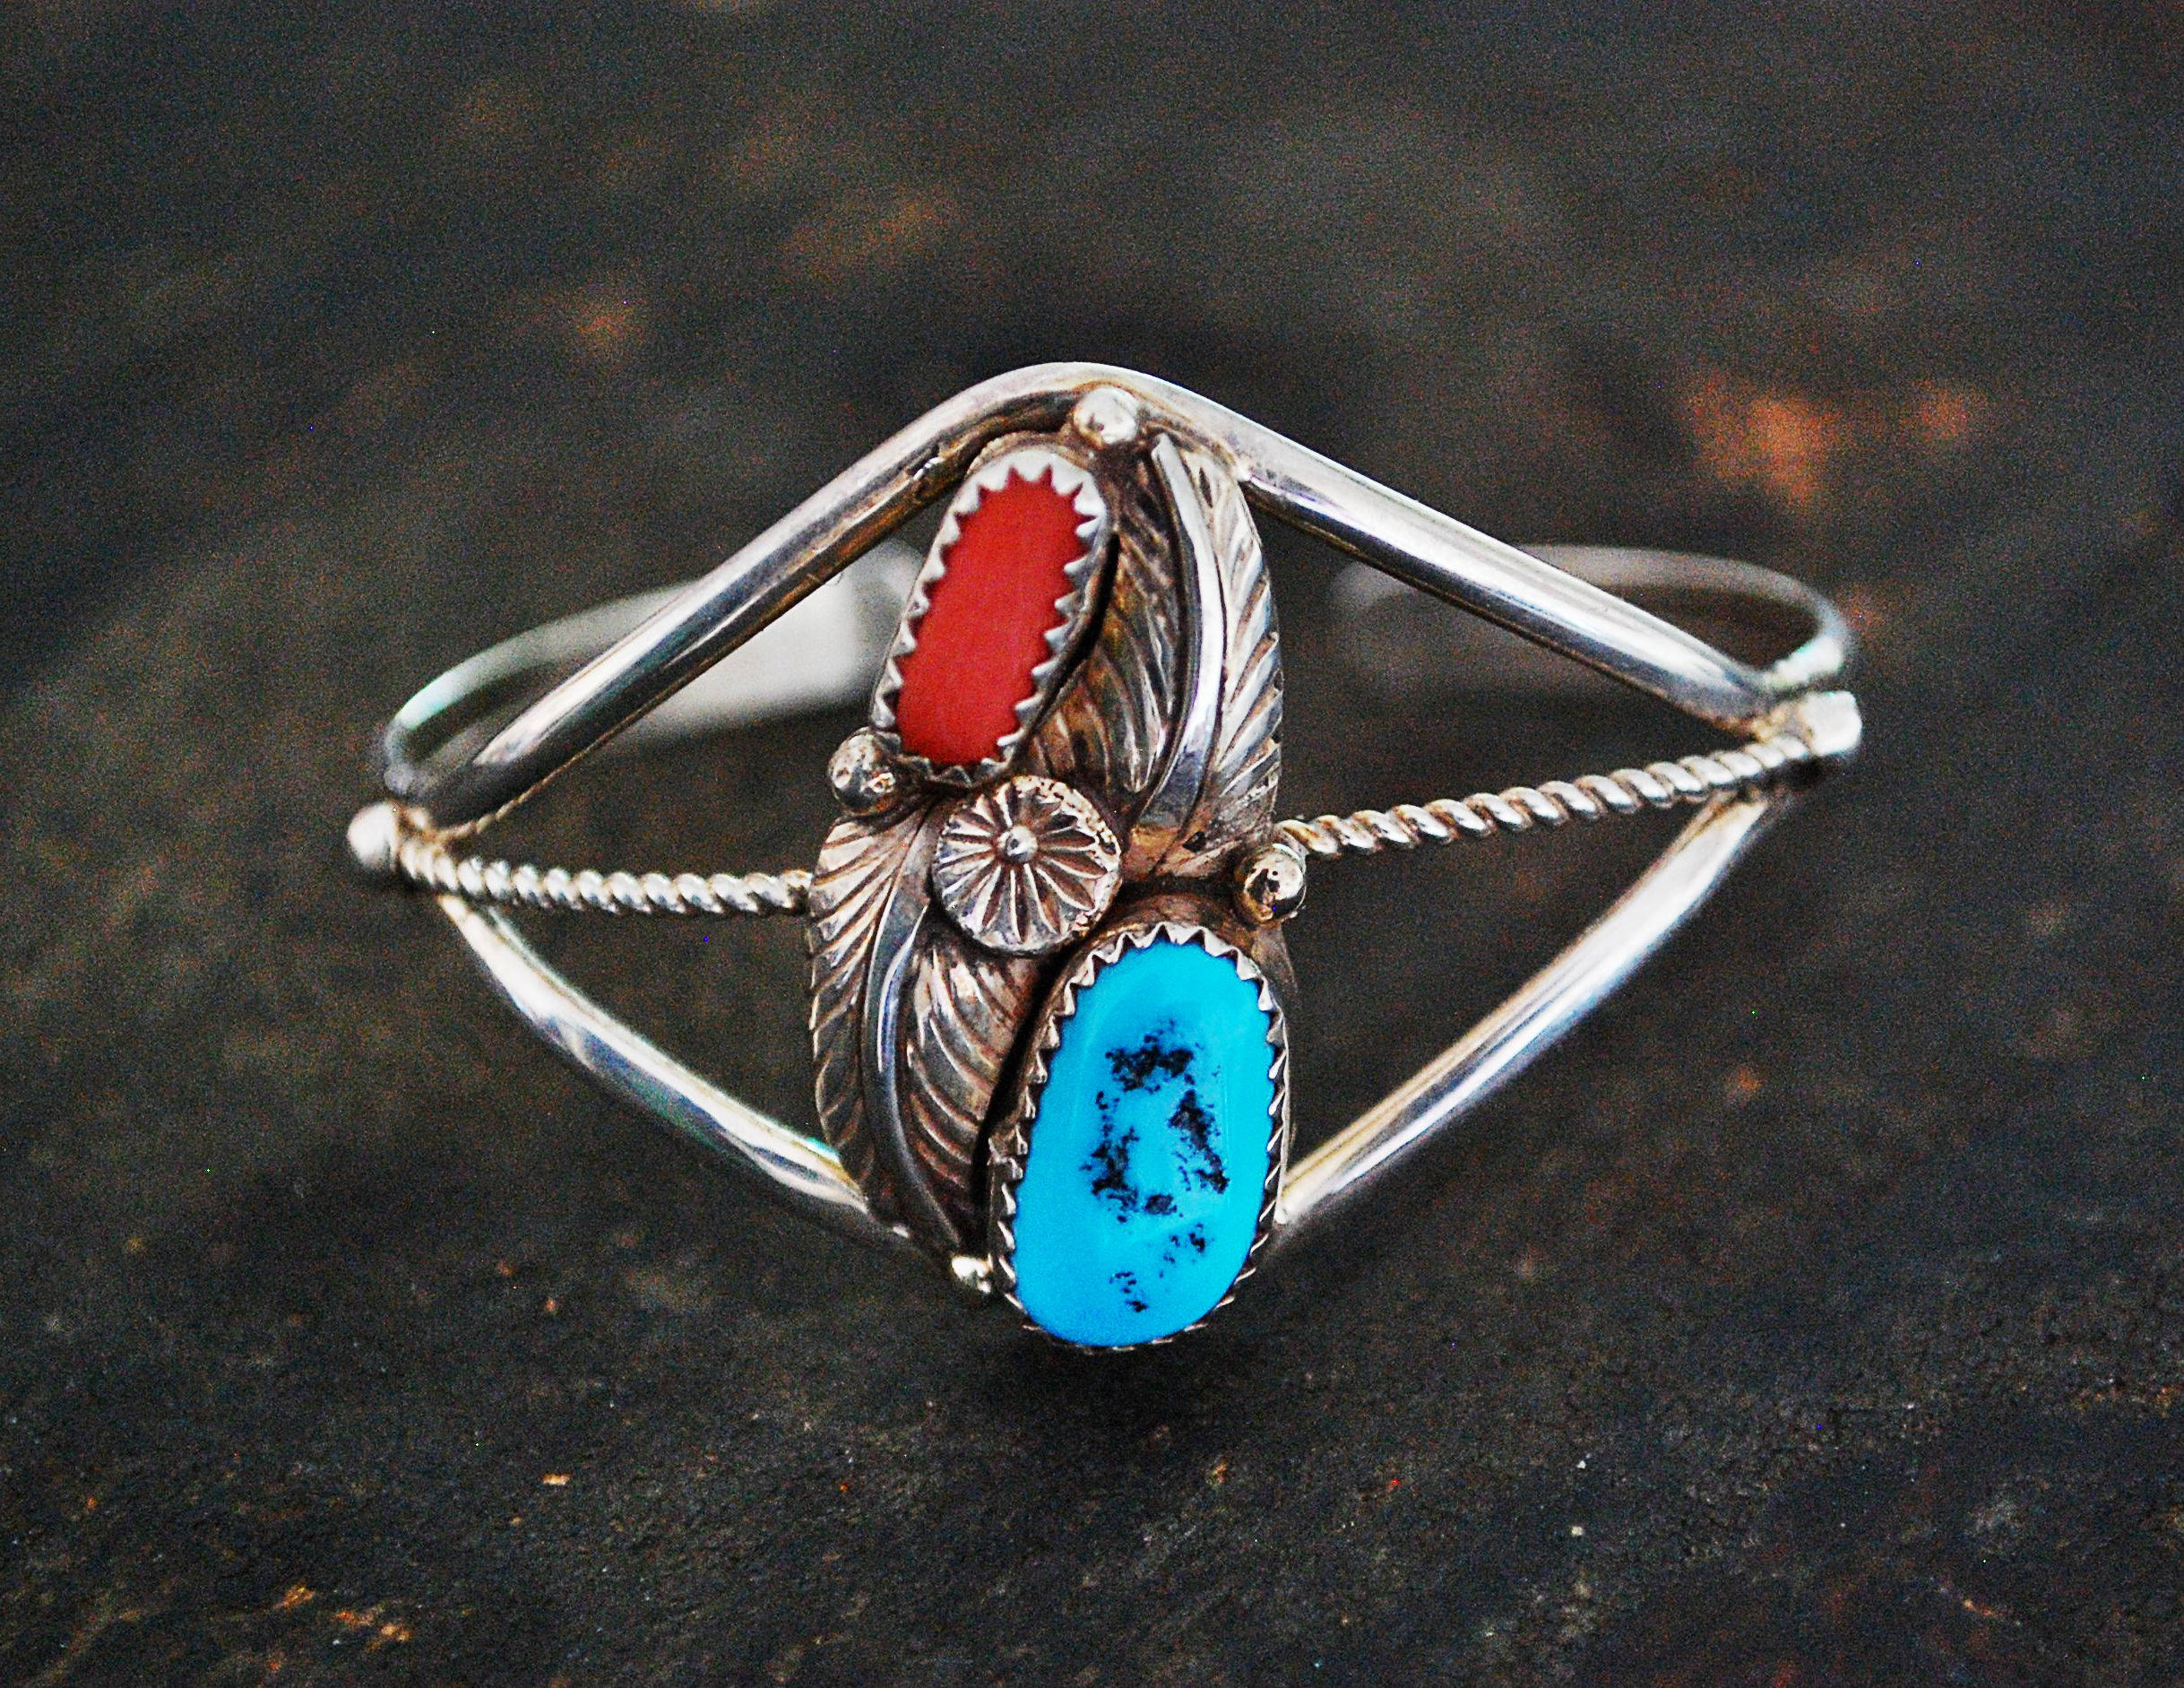 Native American Navajo Cuff Bracelet with Coral, Turquiose, Flower and Leaf - Navajo Bracelet - Navajo Jewelry - XS